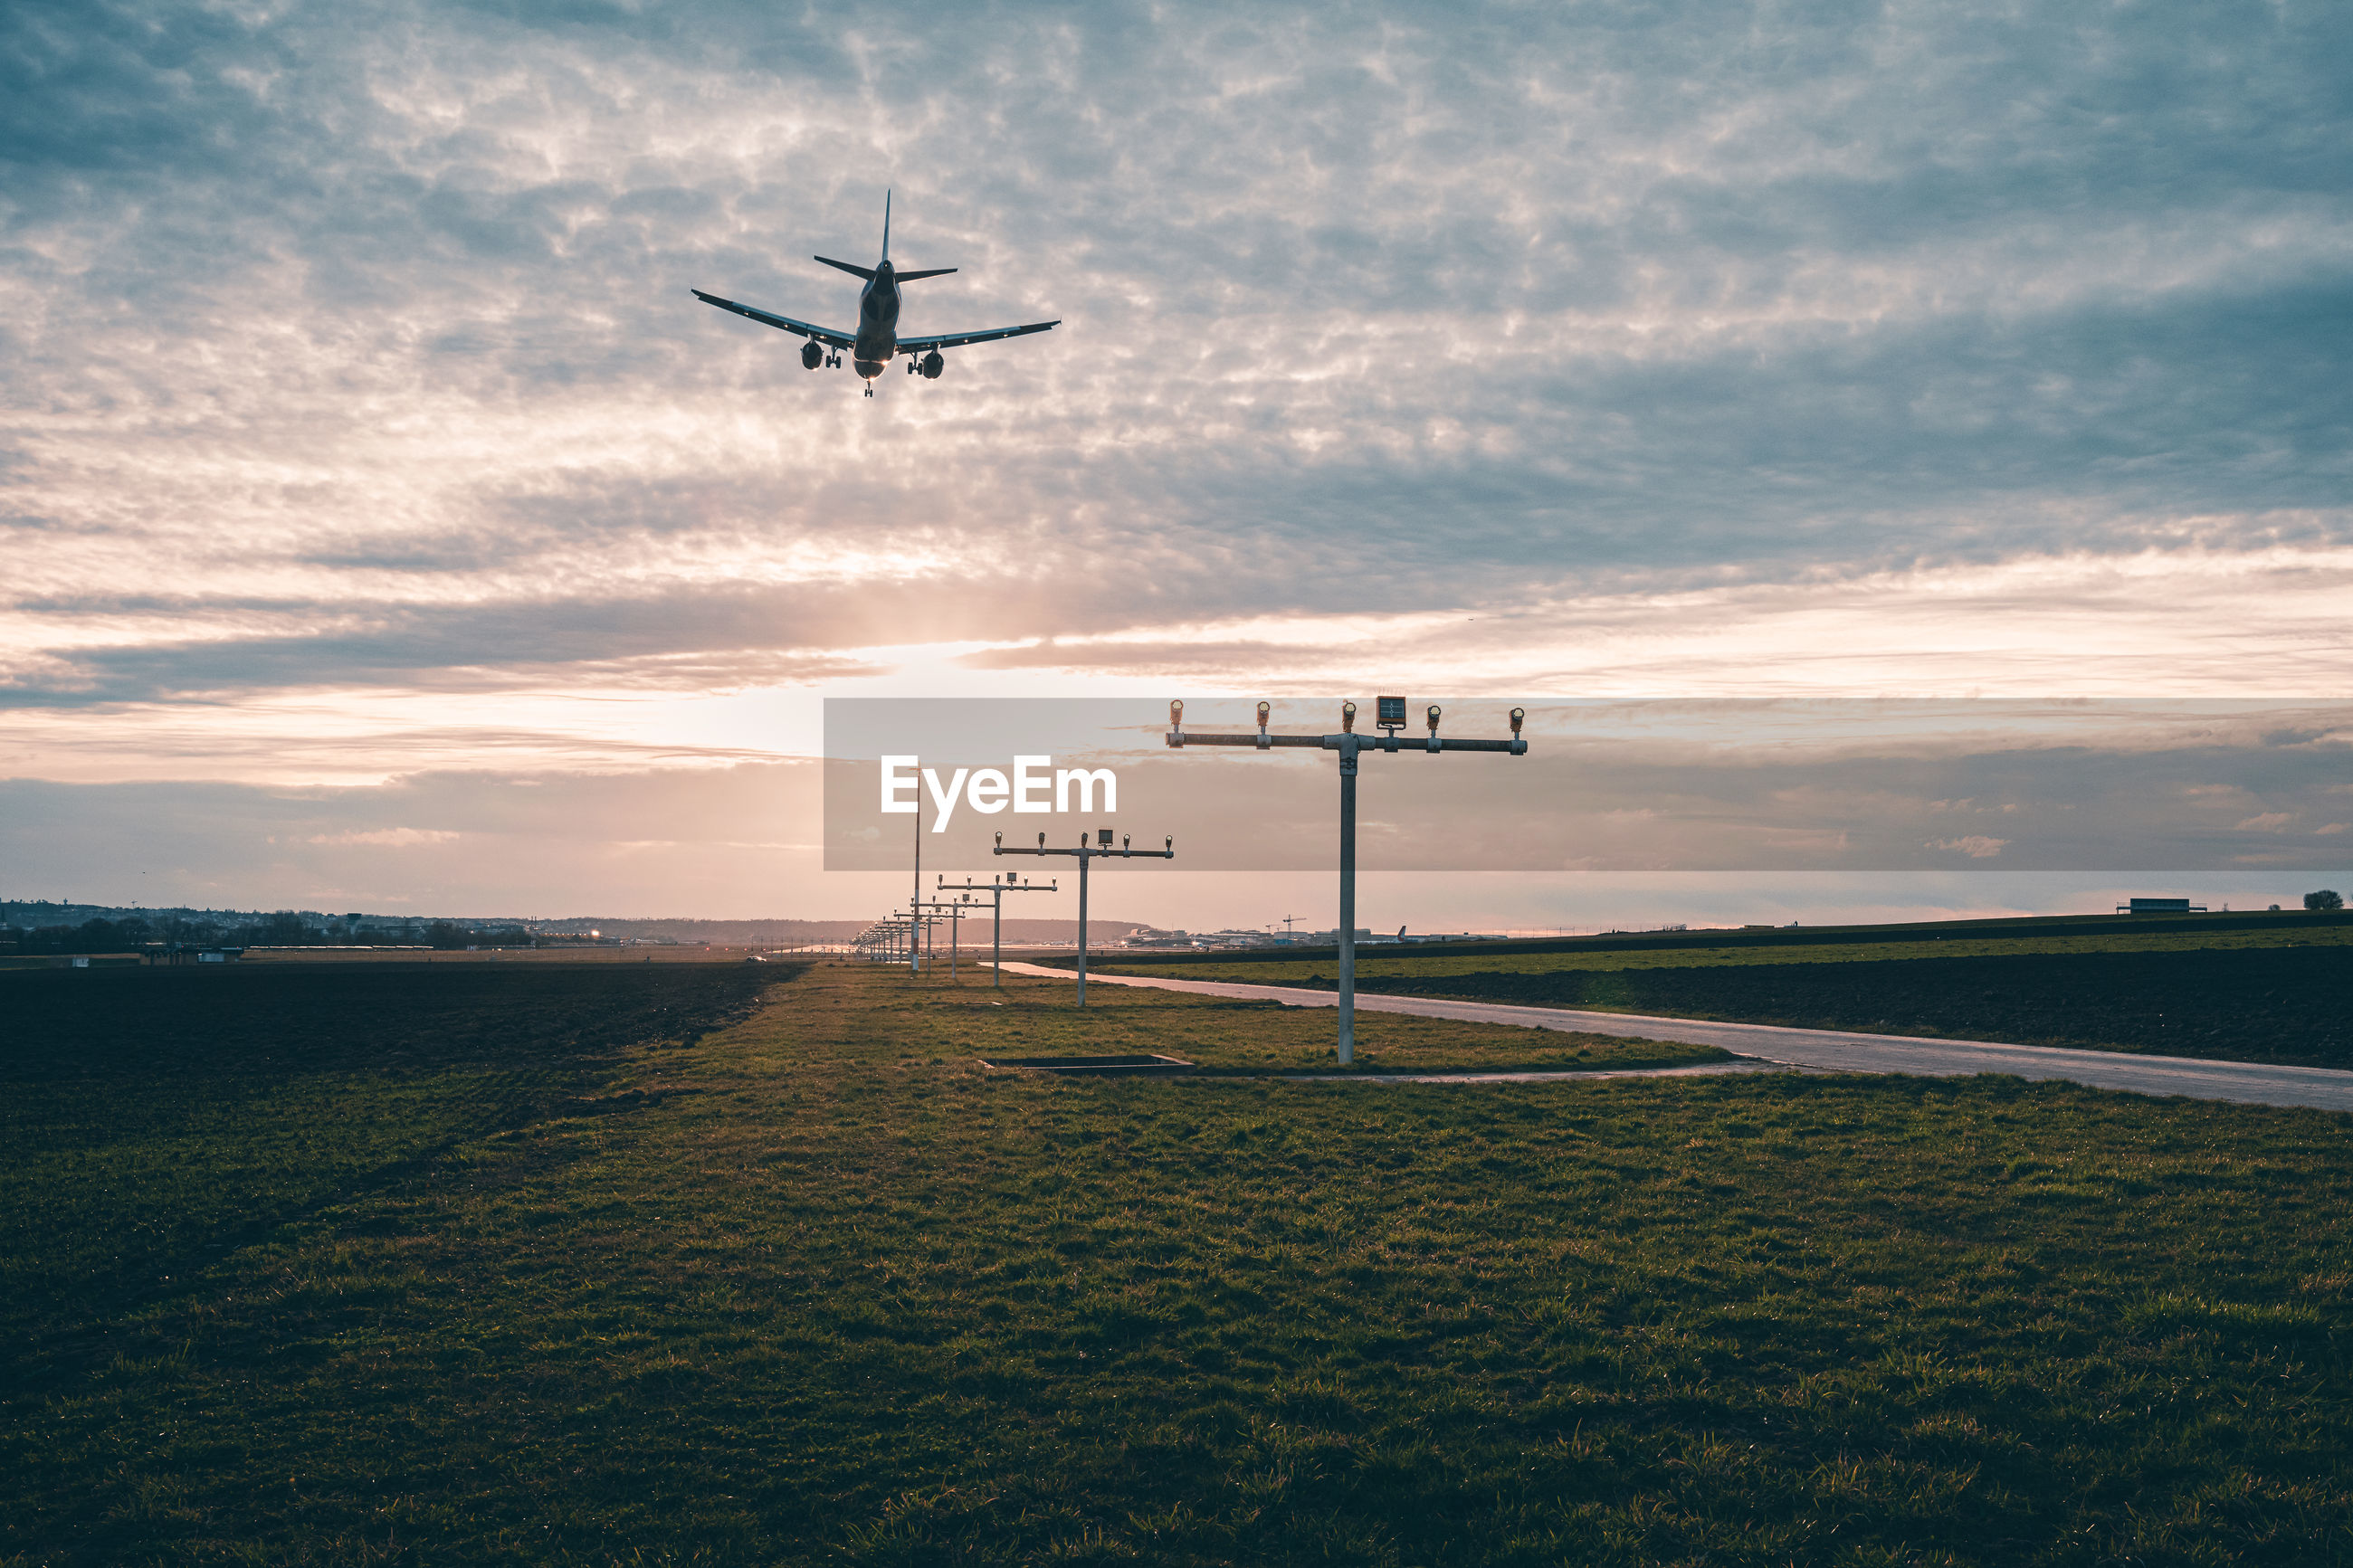 Airplane flying over land against sky during sunset